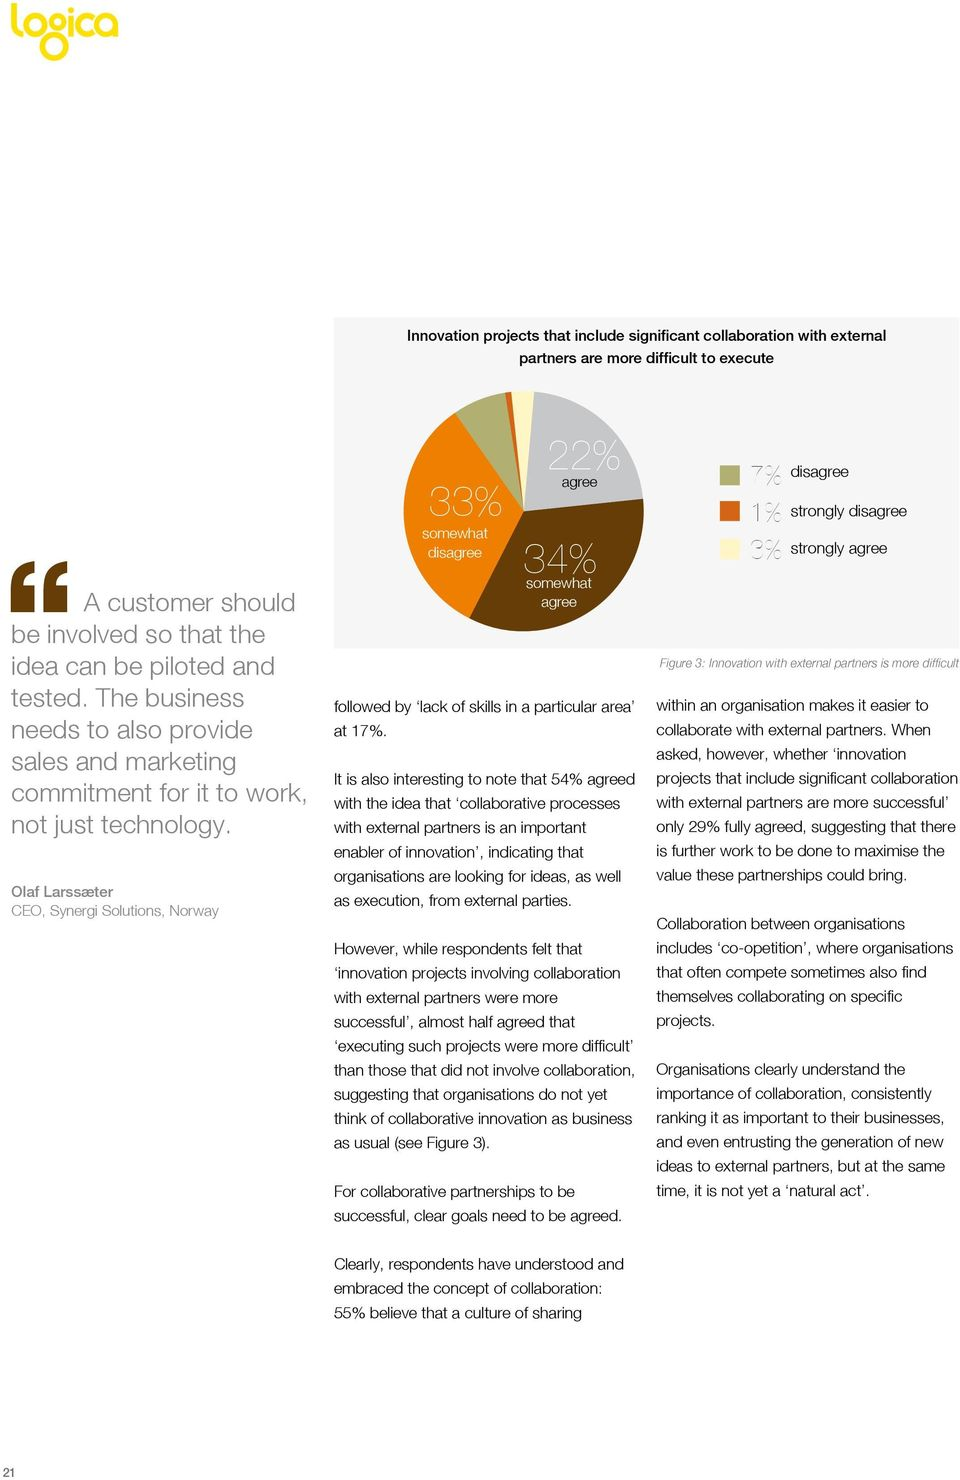 Olaf Larssæter CEO, Synergi Solutions, Norway 33% somewhat disagree 22% agree 34% somewhat agree followed by lack of skills in a particular area at 17%.